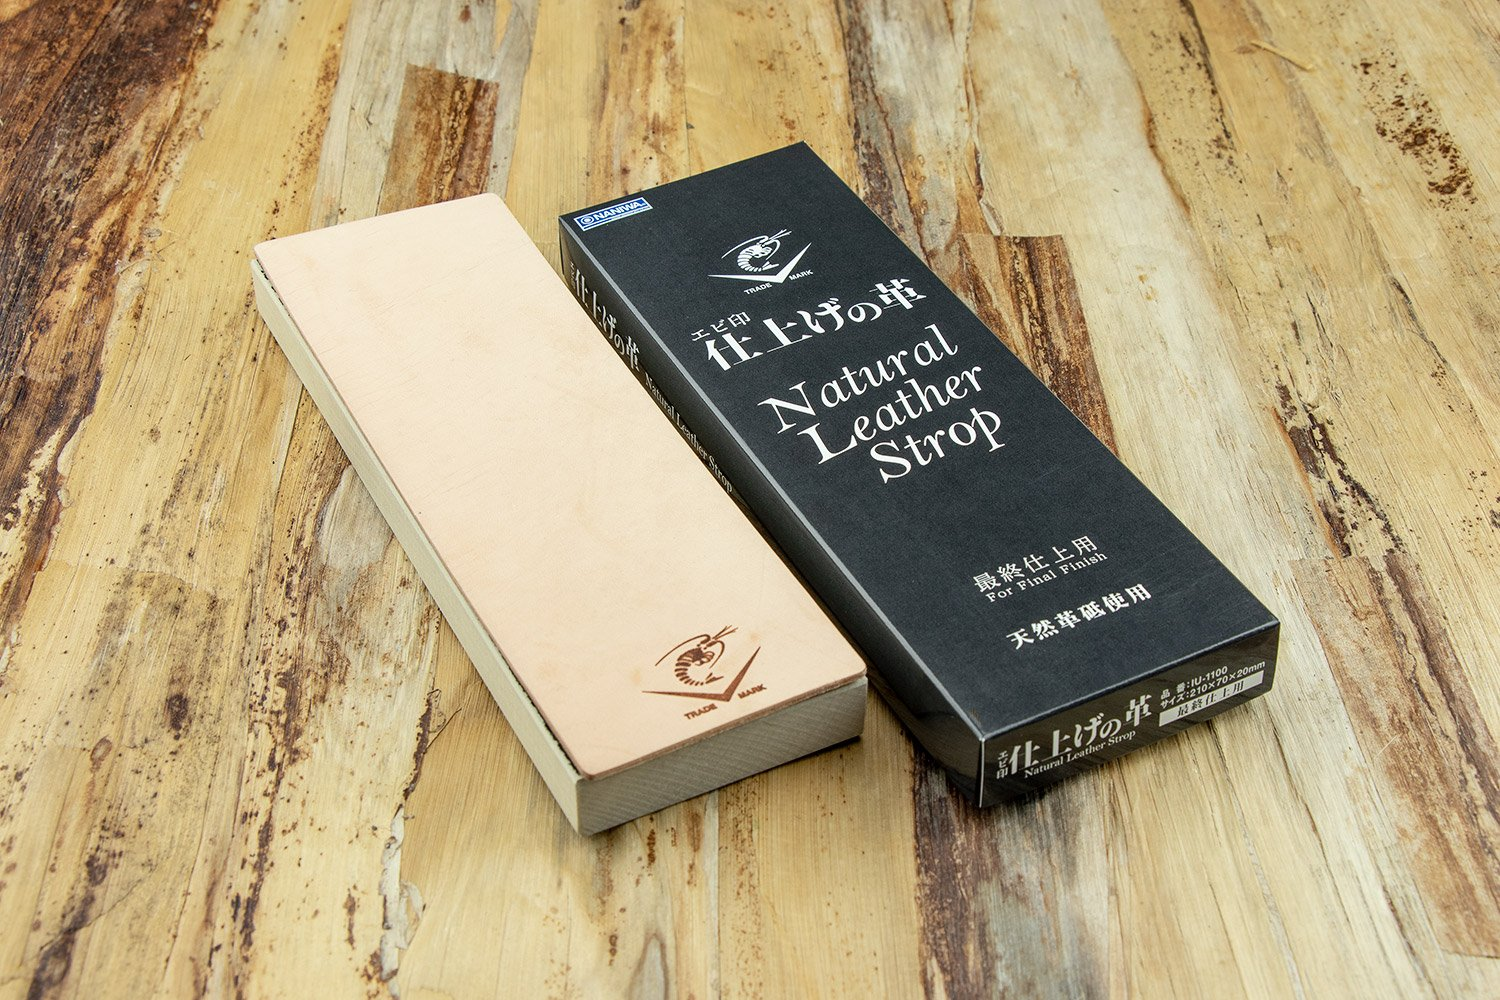 Naniwa Leather Strop